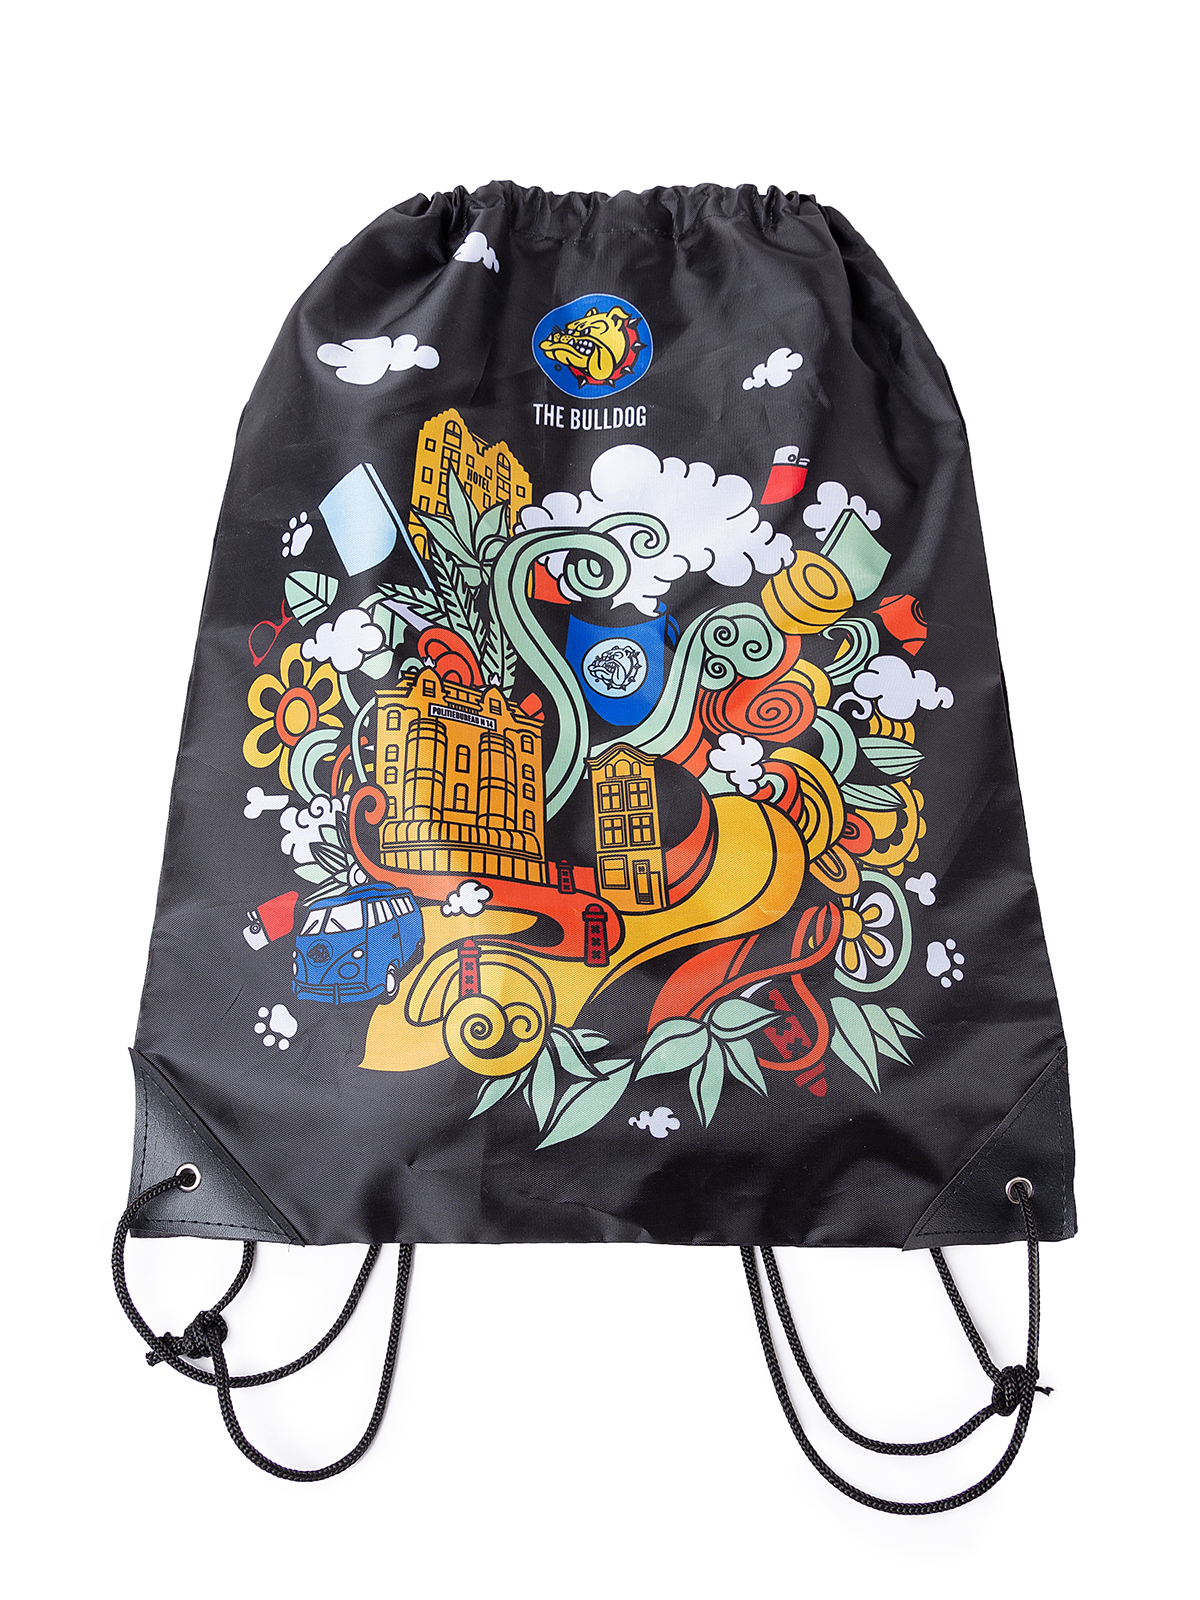 this is a bag